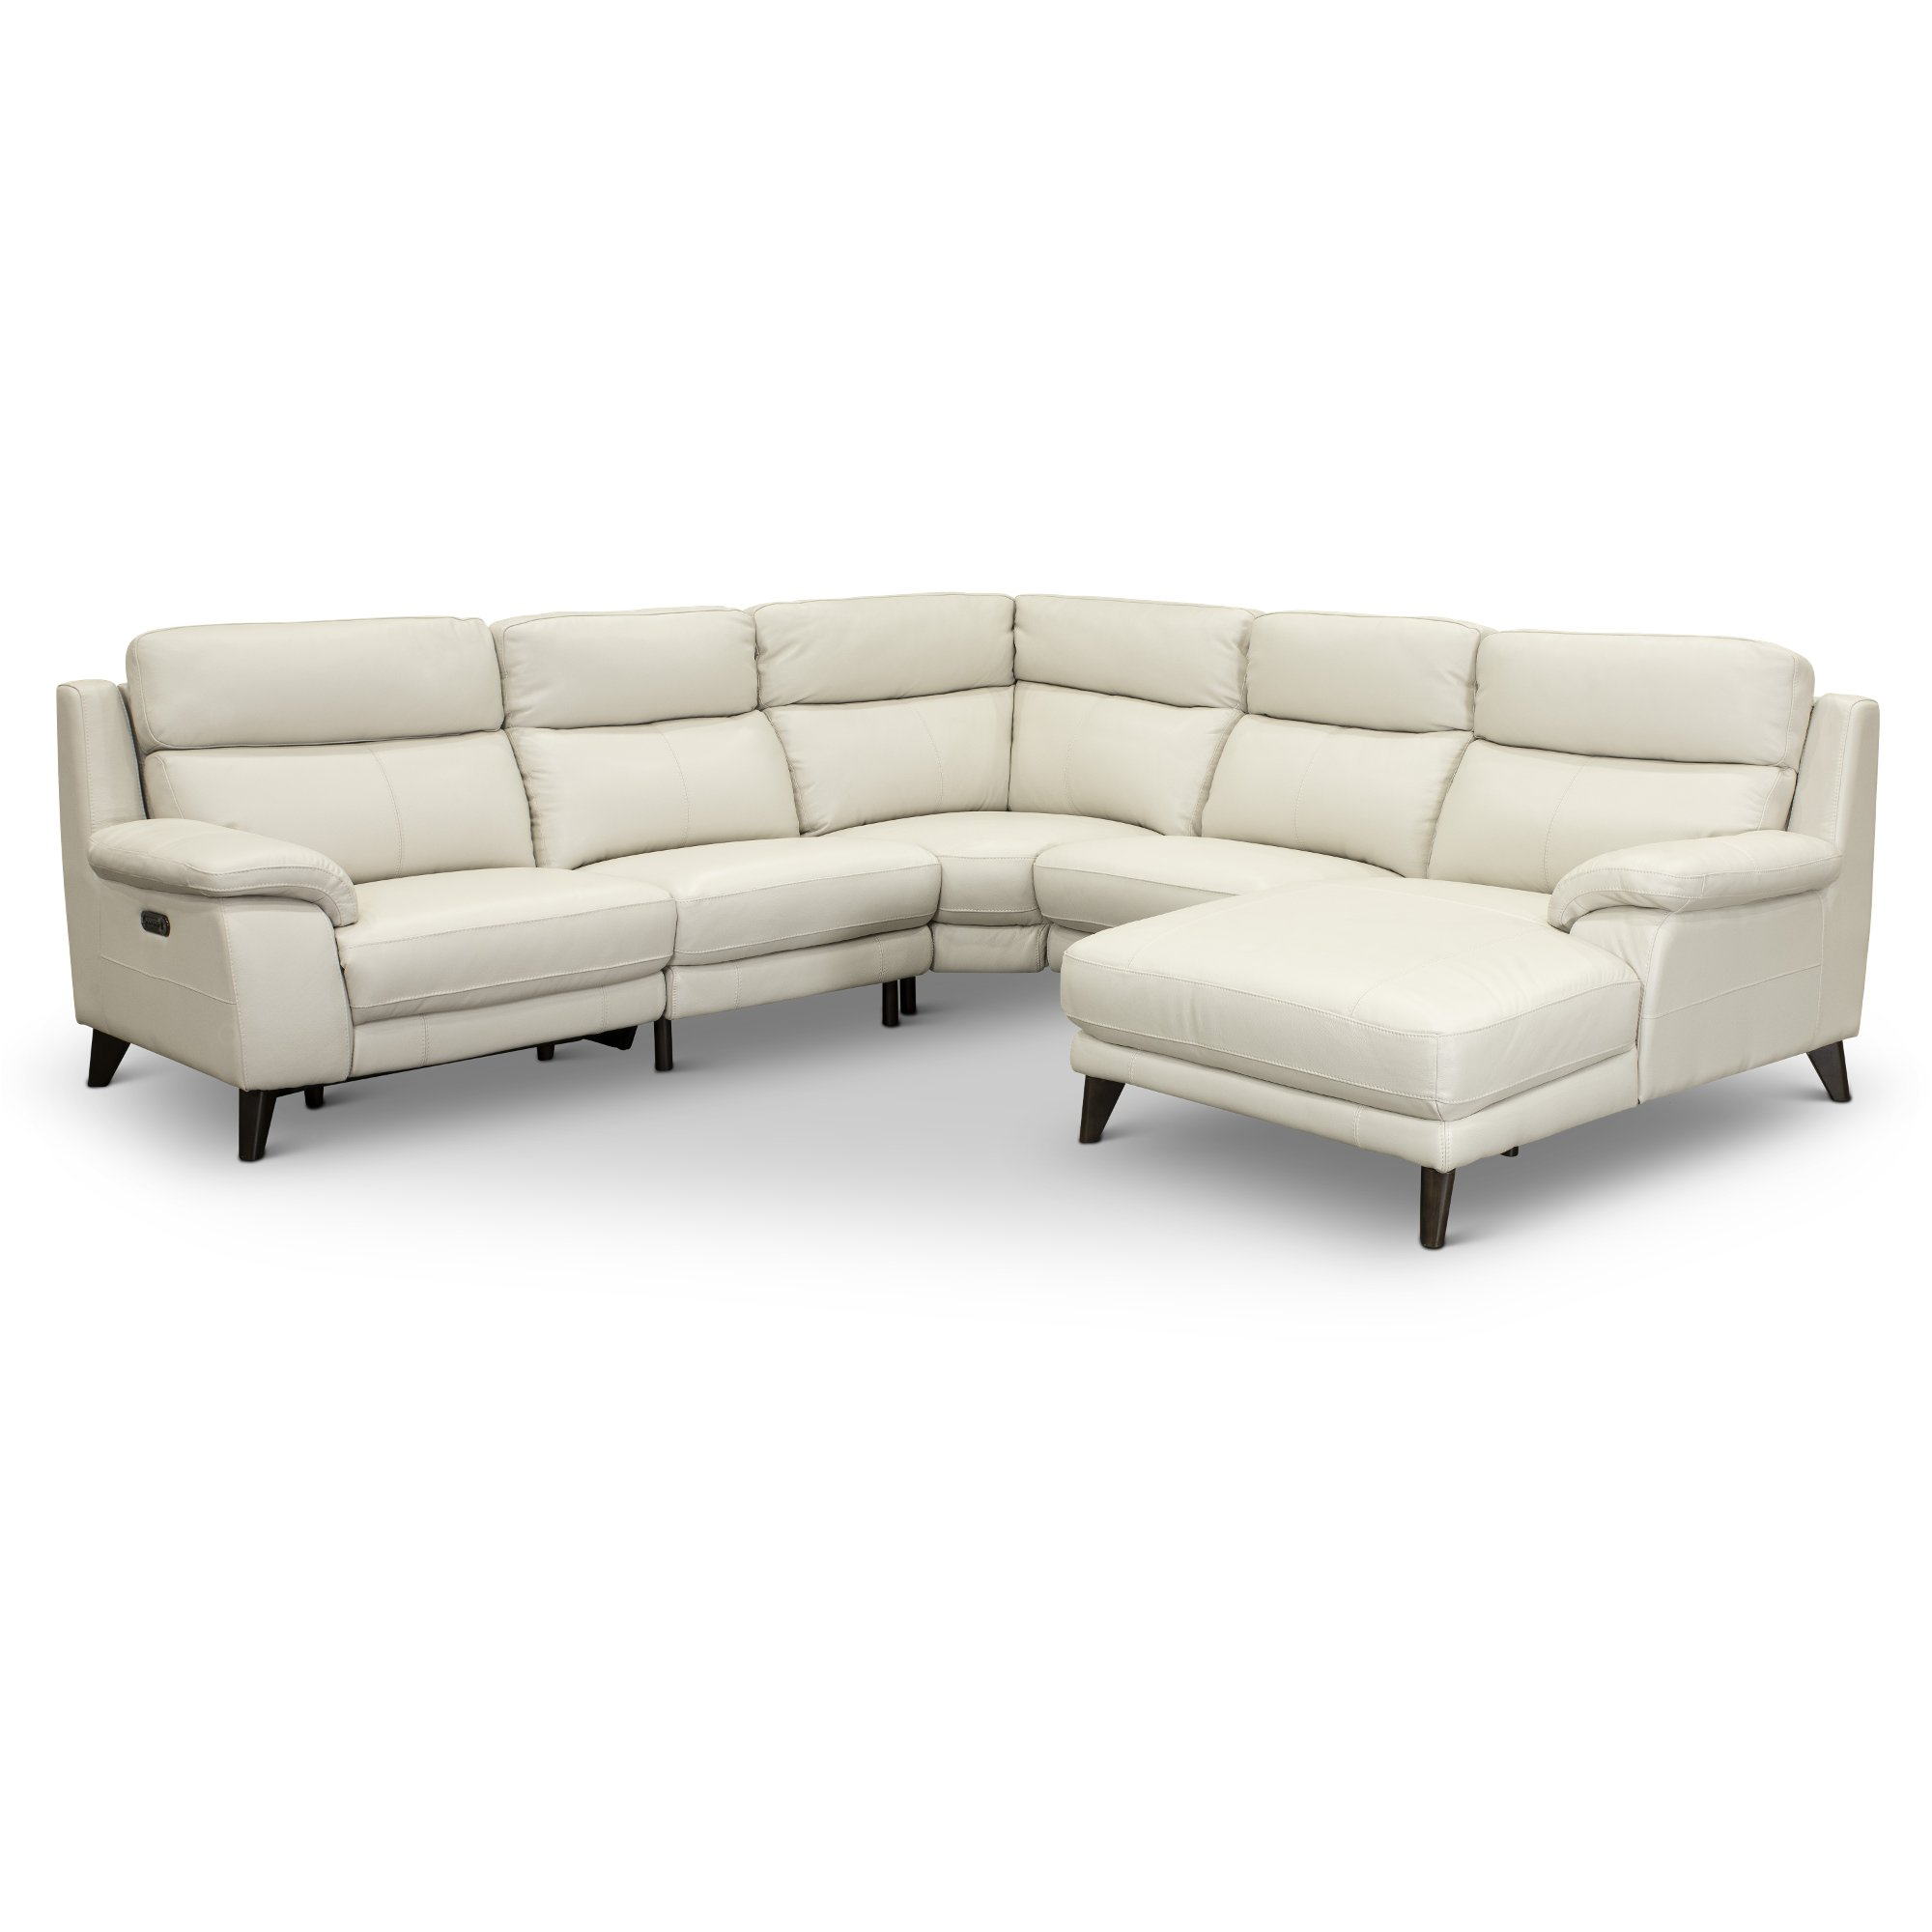 White Leather Sectional Sofa frost white 5 piece power reclining sectional sofa - venice